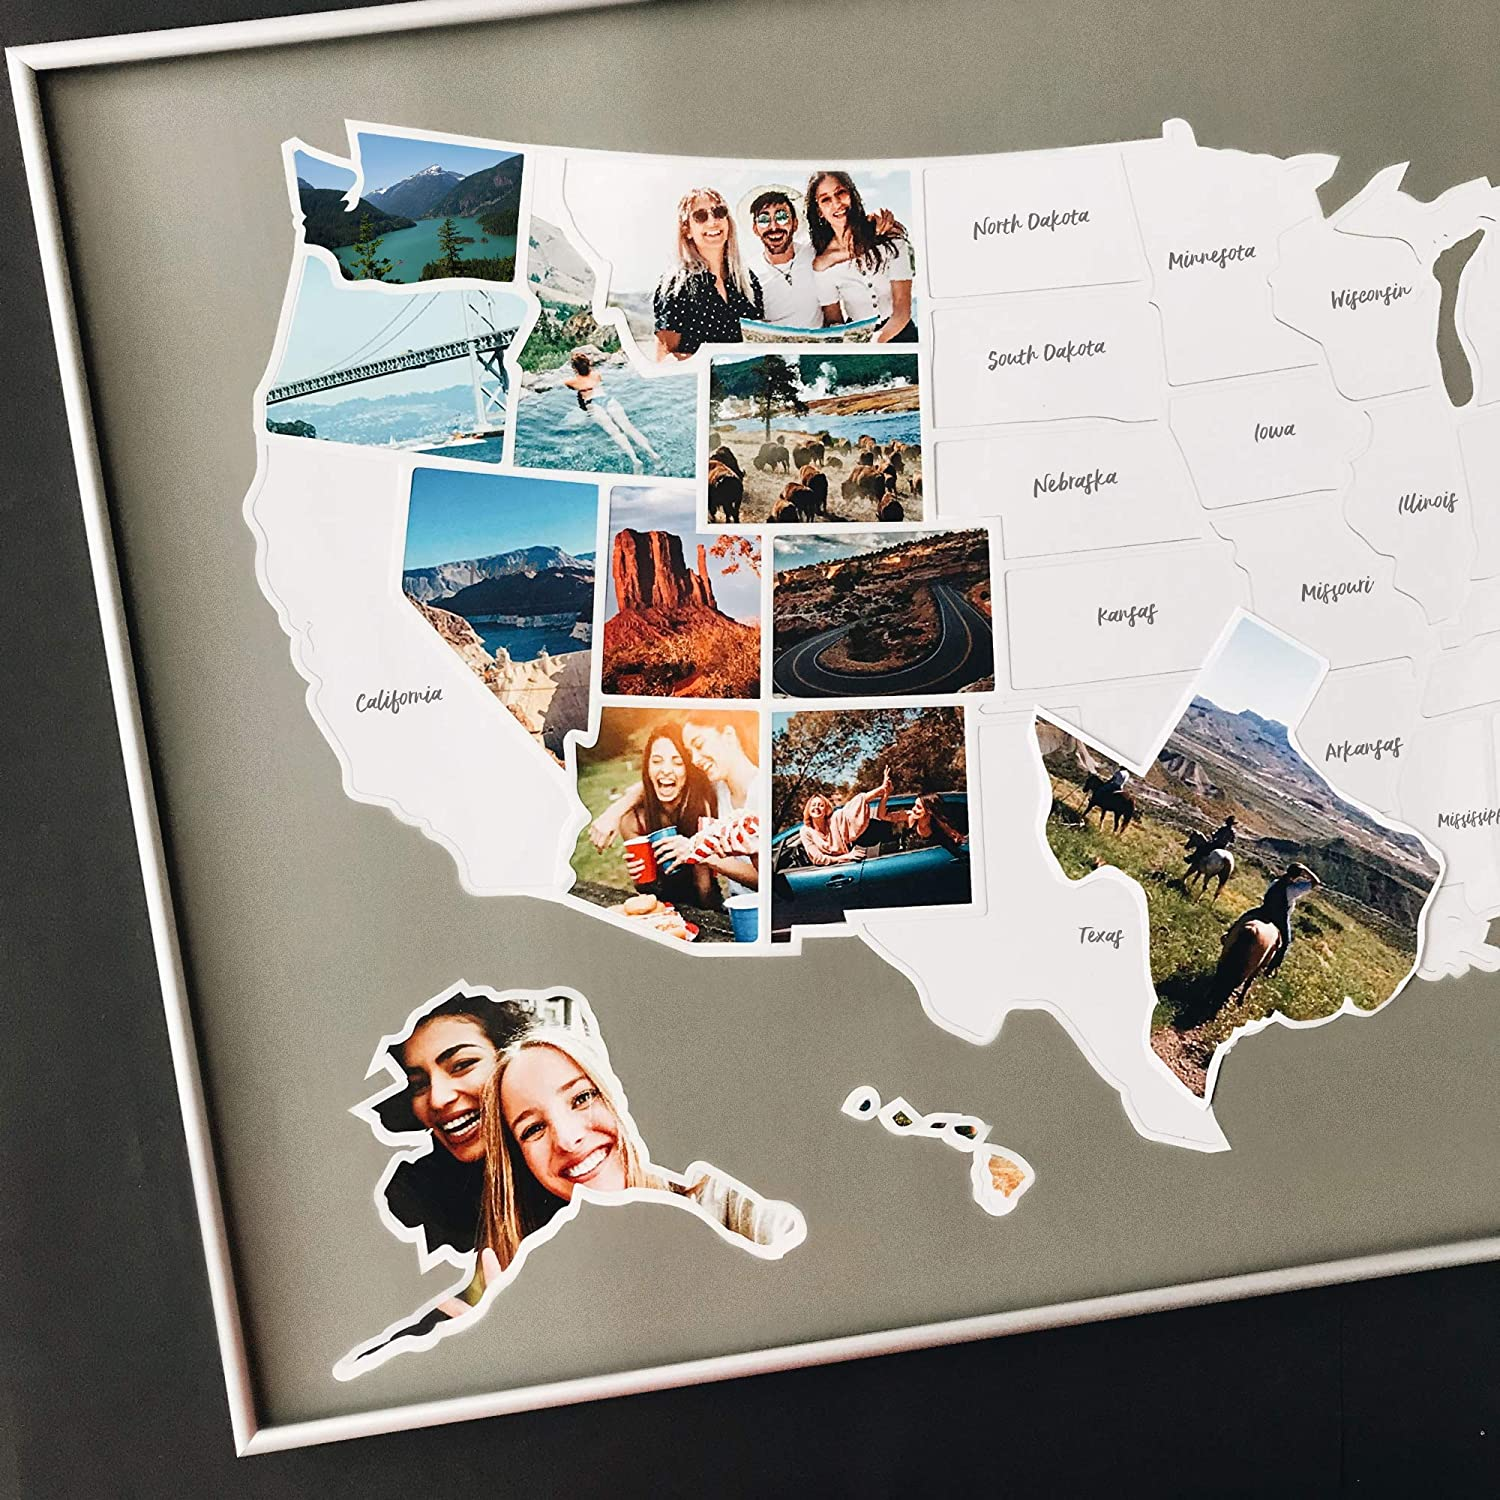 USA Photo Map Credence - 50 Phoenix Mall States Travel Unframed in 36 x 24 M